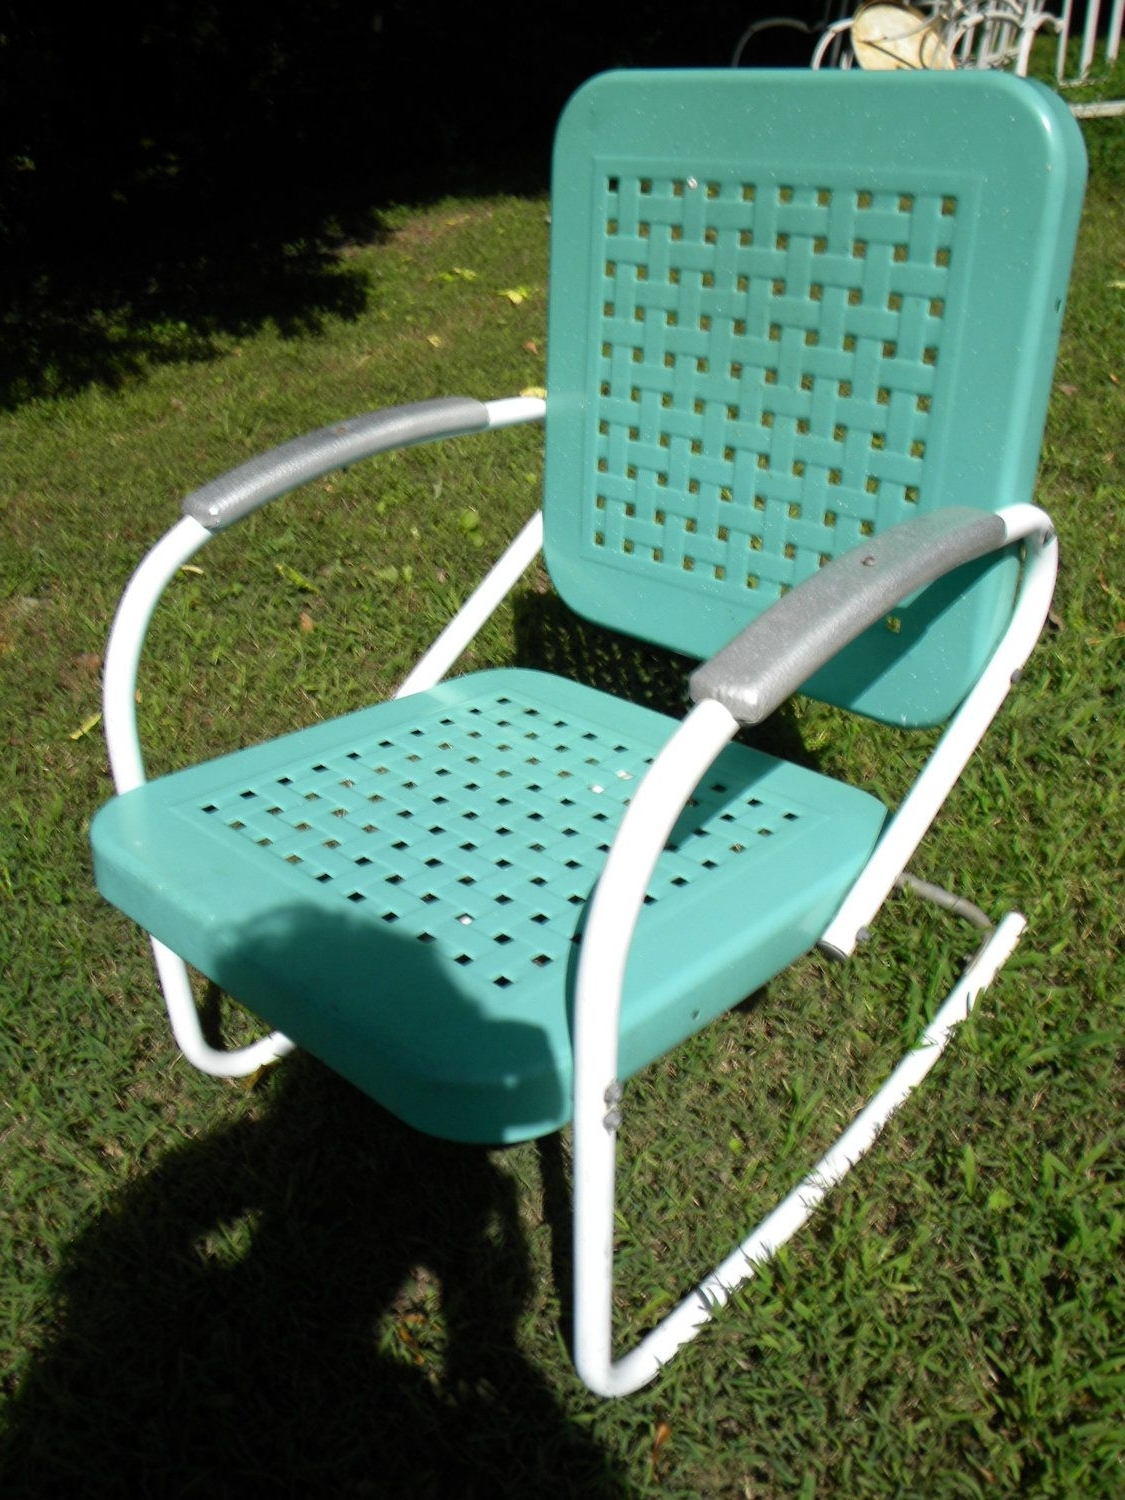 Vtg 50S 60S Retro Outdoor Metal Lawn Patio Porch Rocking Chair Inside Preferred Vintage Metal Rocking Patio Chairs (View 2 of 15)